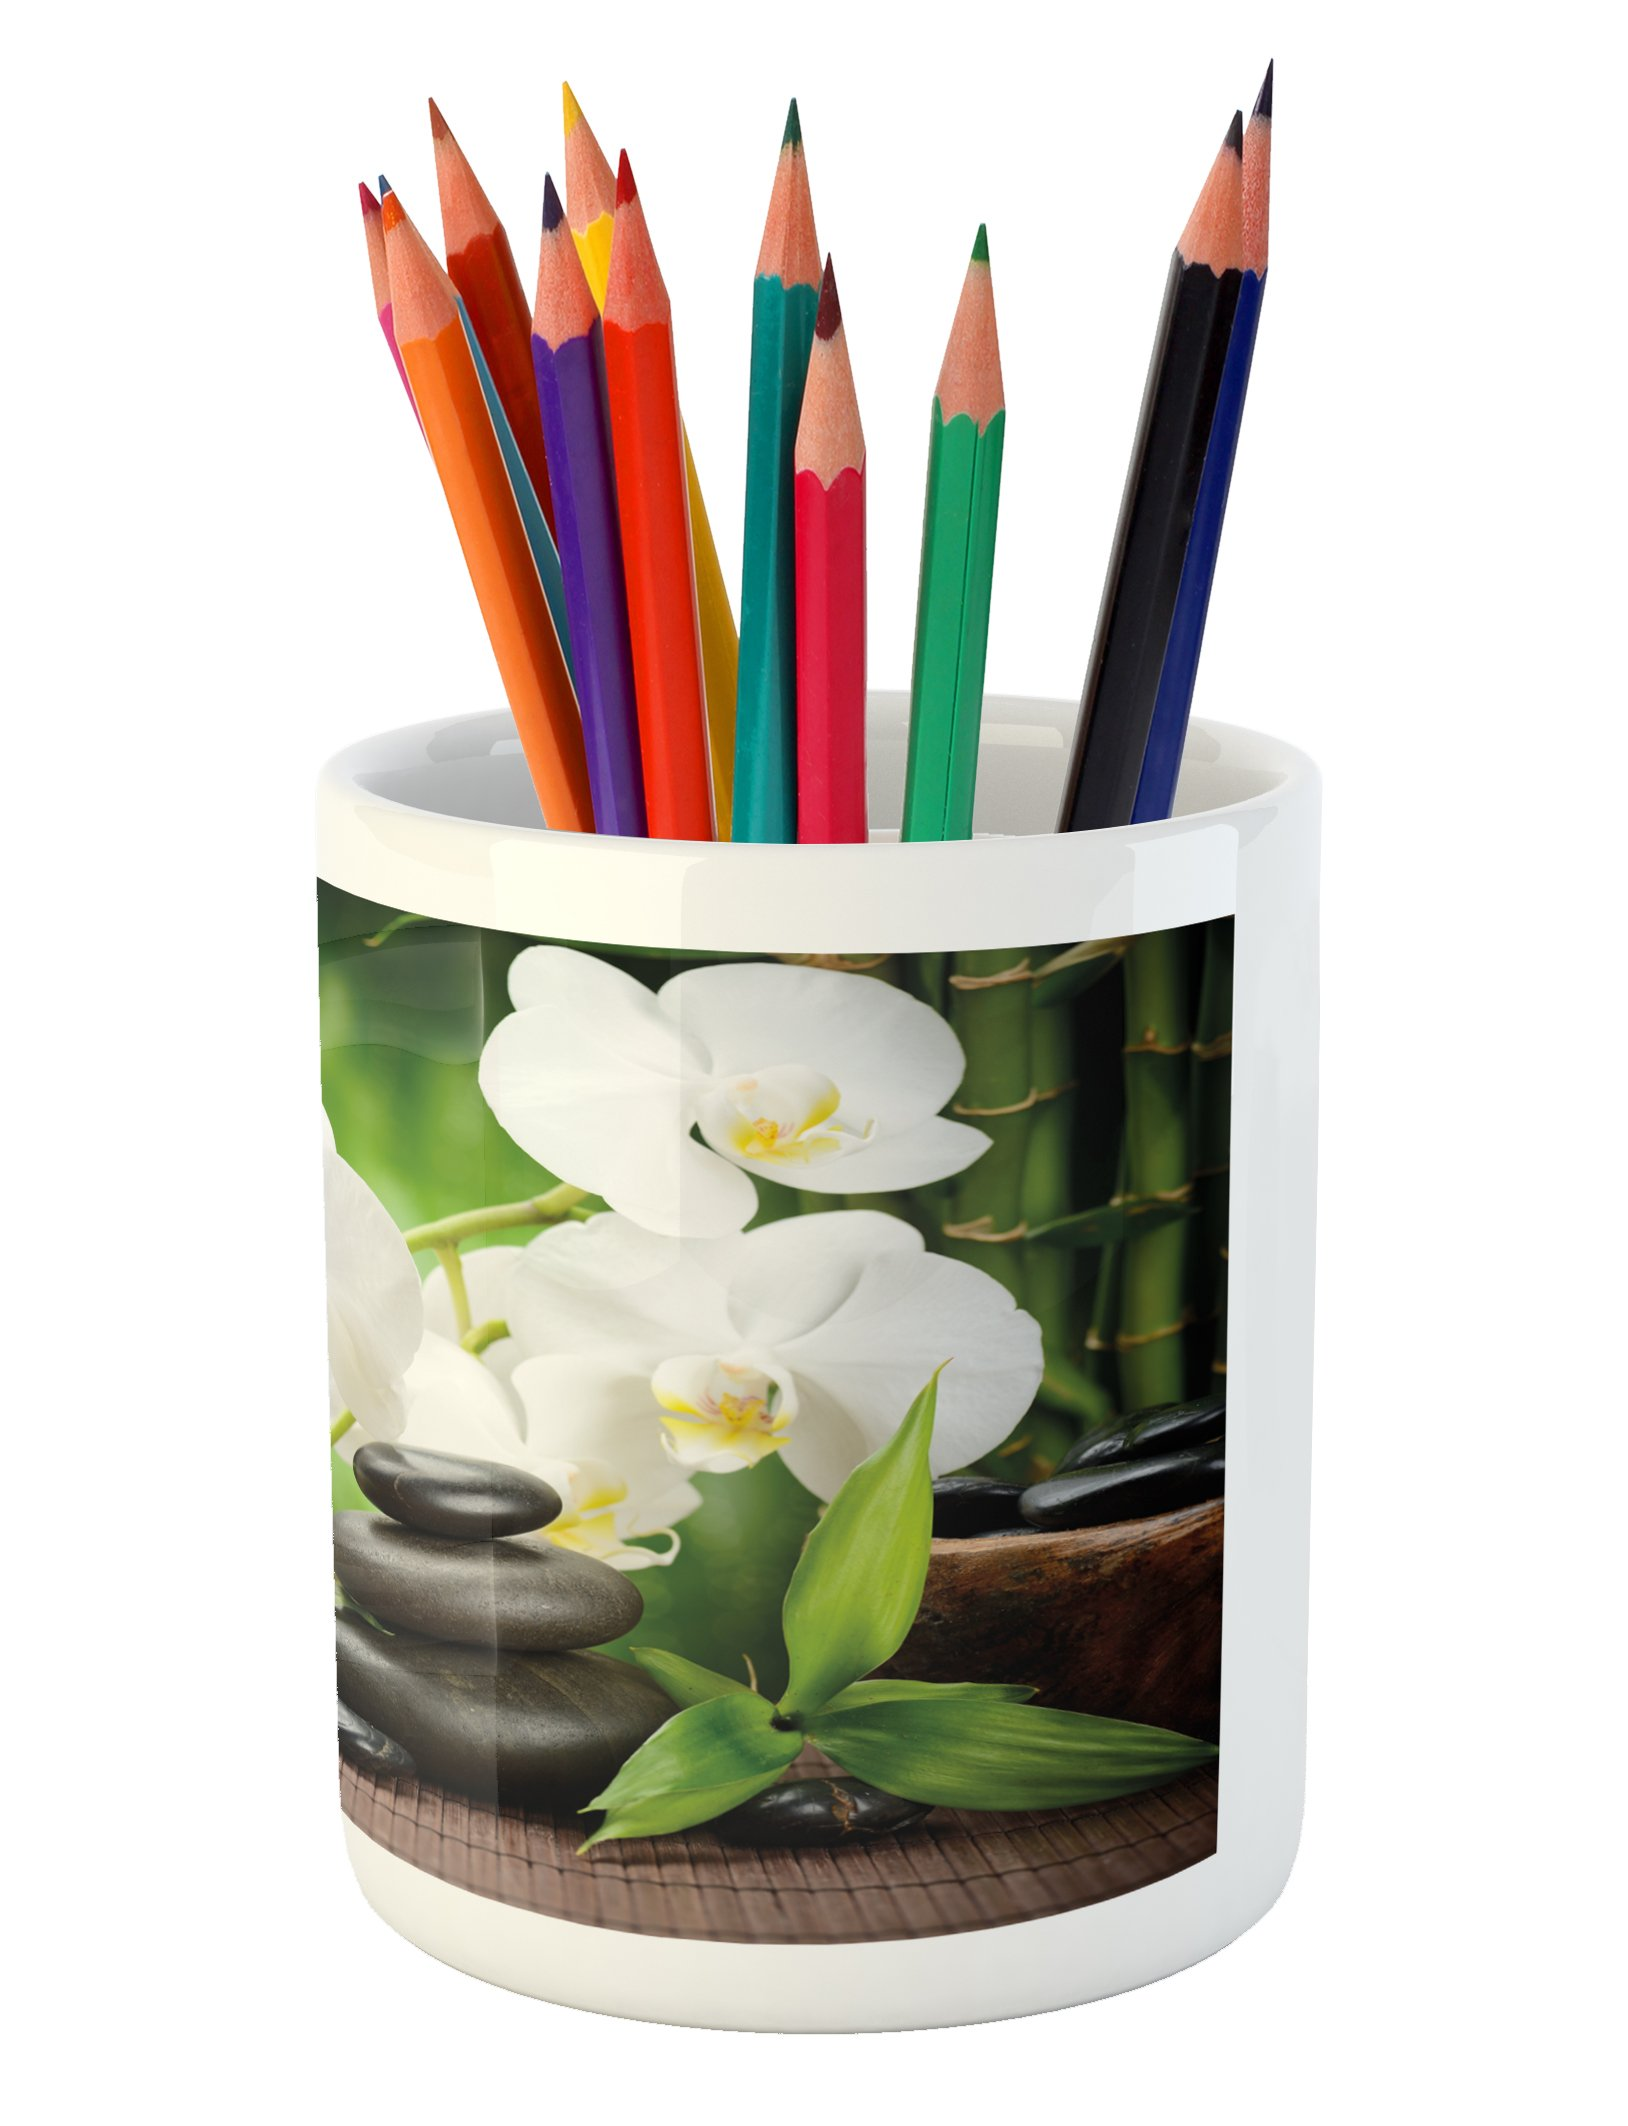 Ambesonne Spa Pencil Pen Holder, Zen Stones with Orchid and Candles Green Plants at the Background Print, Printed Ceramic Pencil Pen Holder for Desk Office Accessory, White Green and Black by Ambesonne (Image #3)